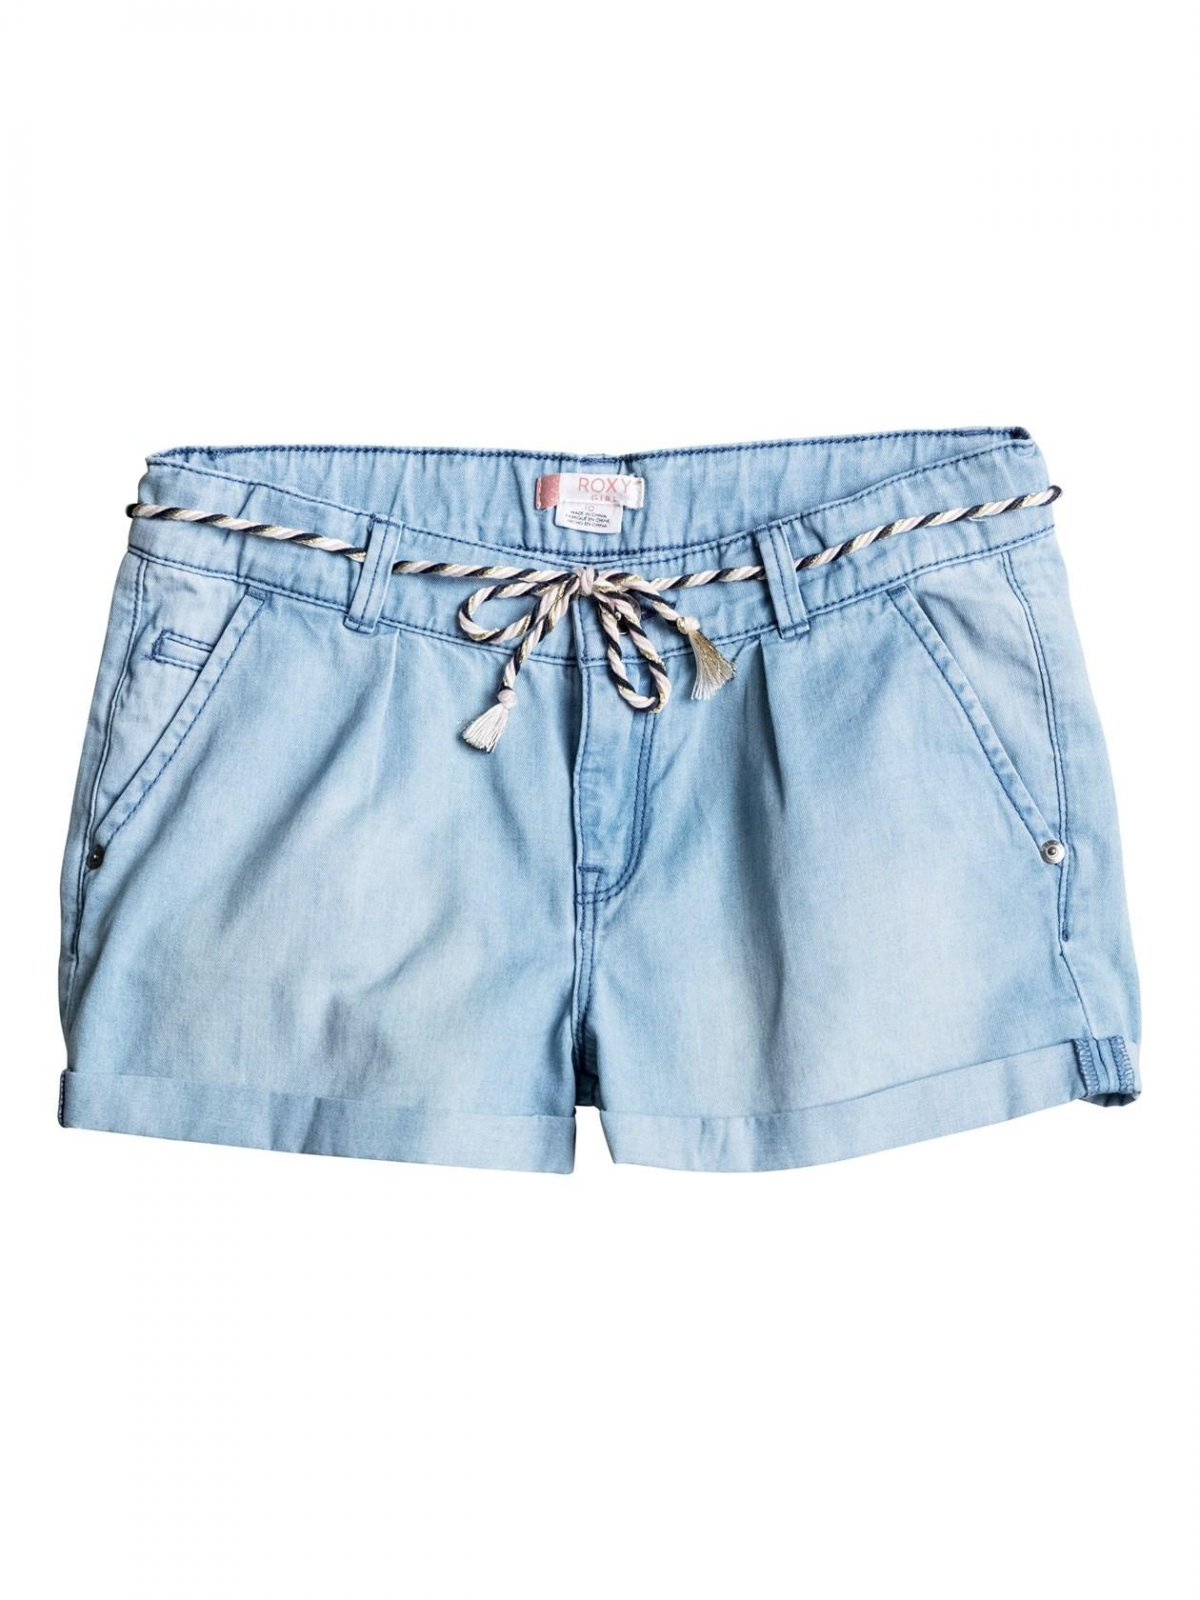 Roxy Just A Habit Short Light Blue